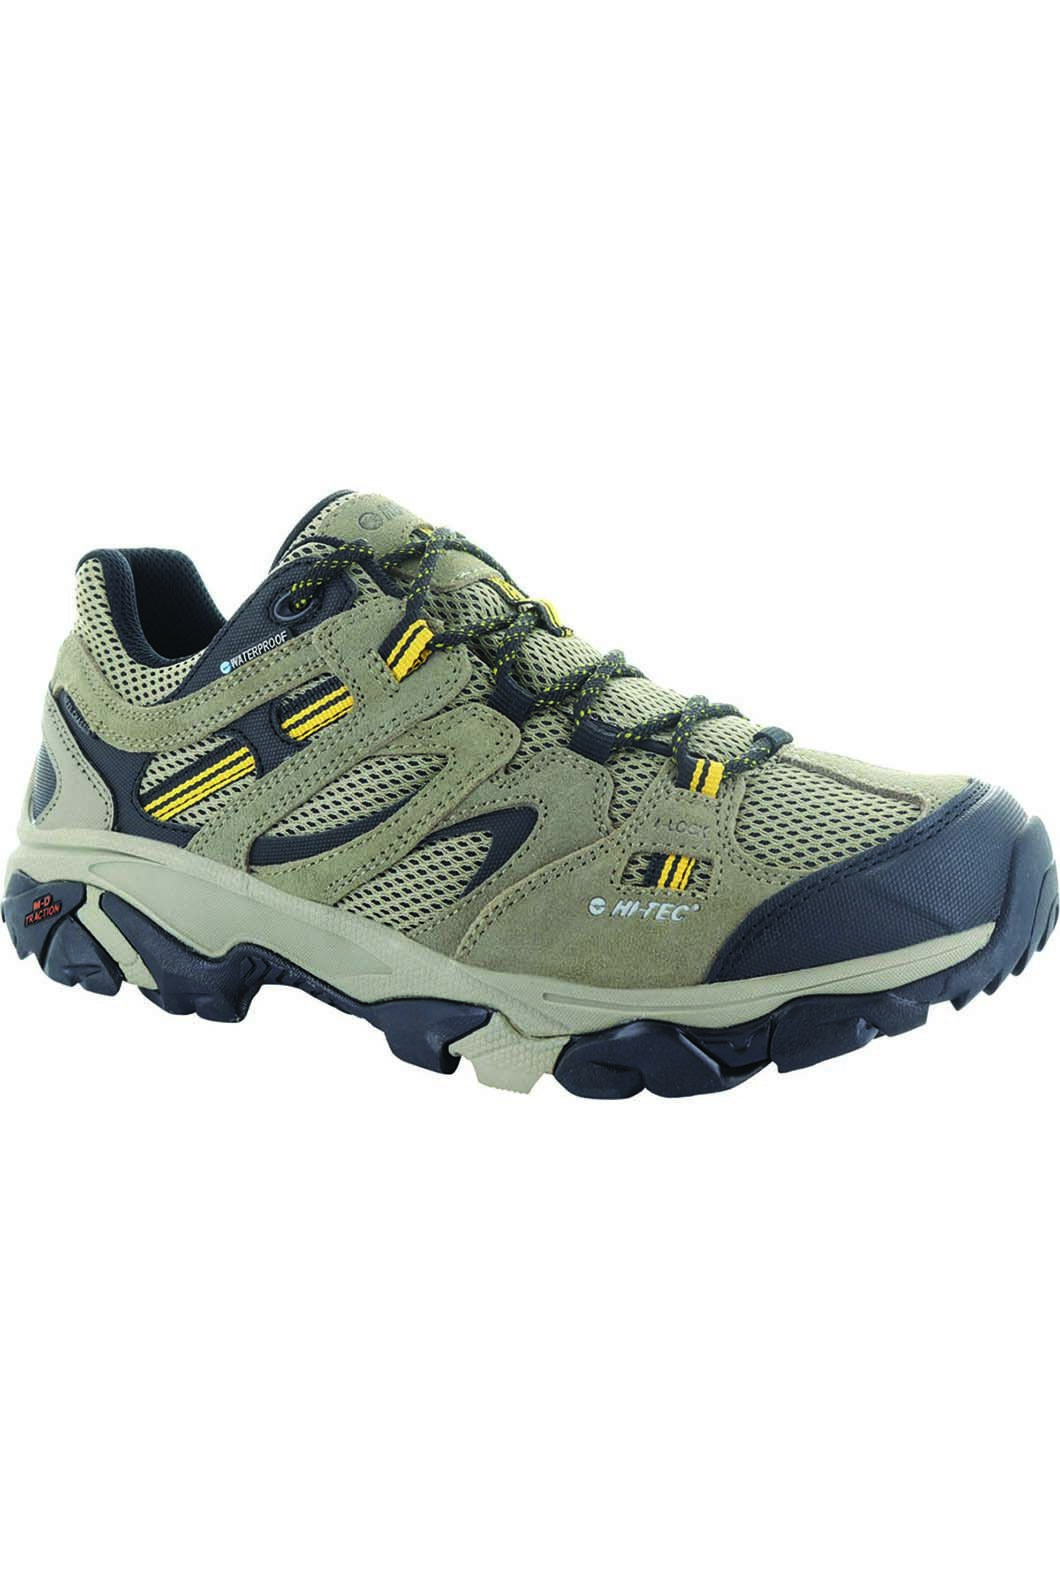 Hi-Tec Men's Ravus Adventure Hiking Shoes, Taupe/Stone/Core Gold, hi-res